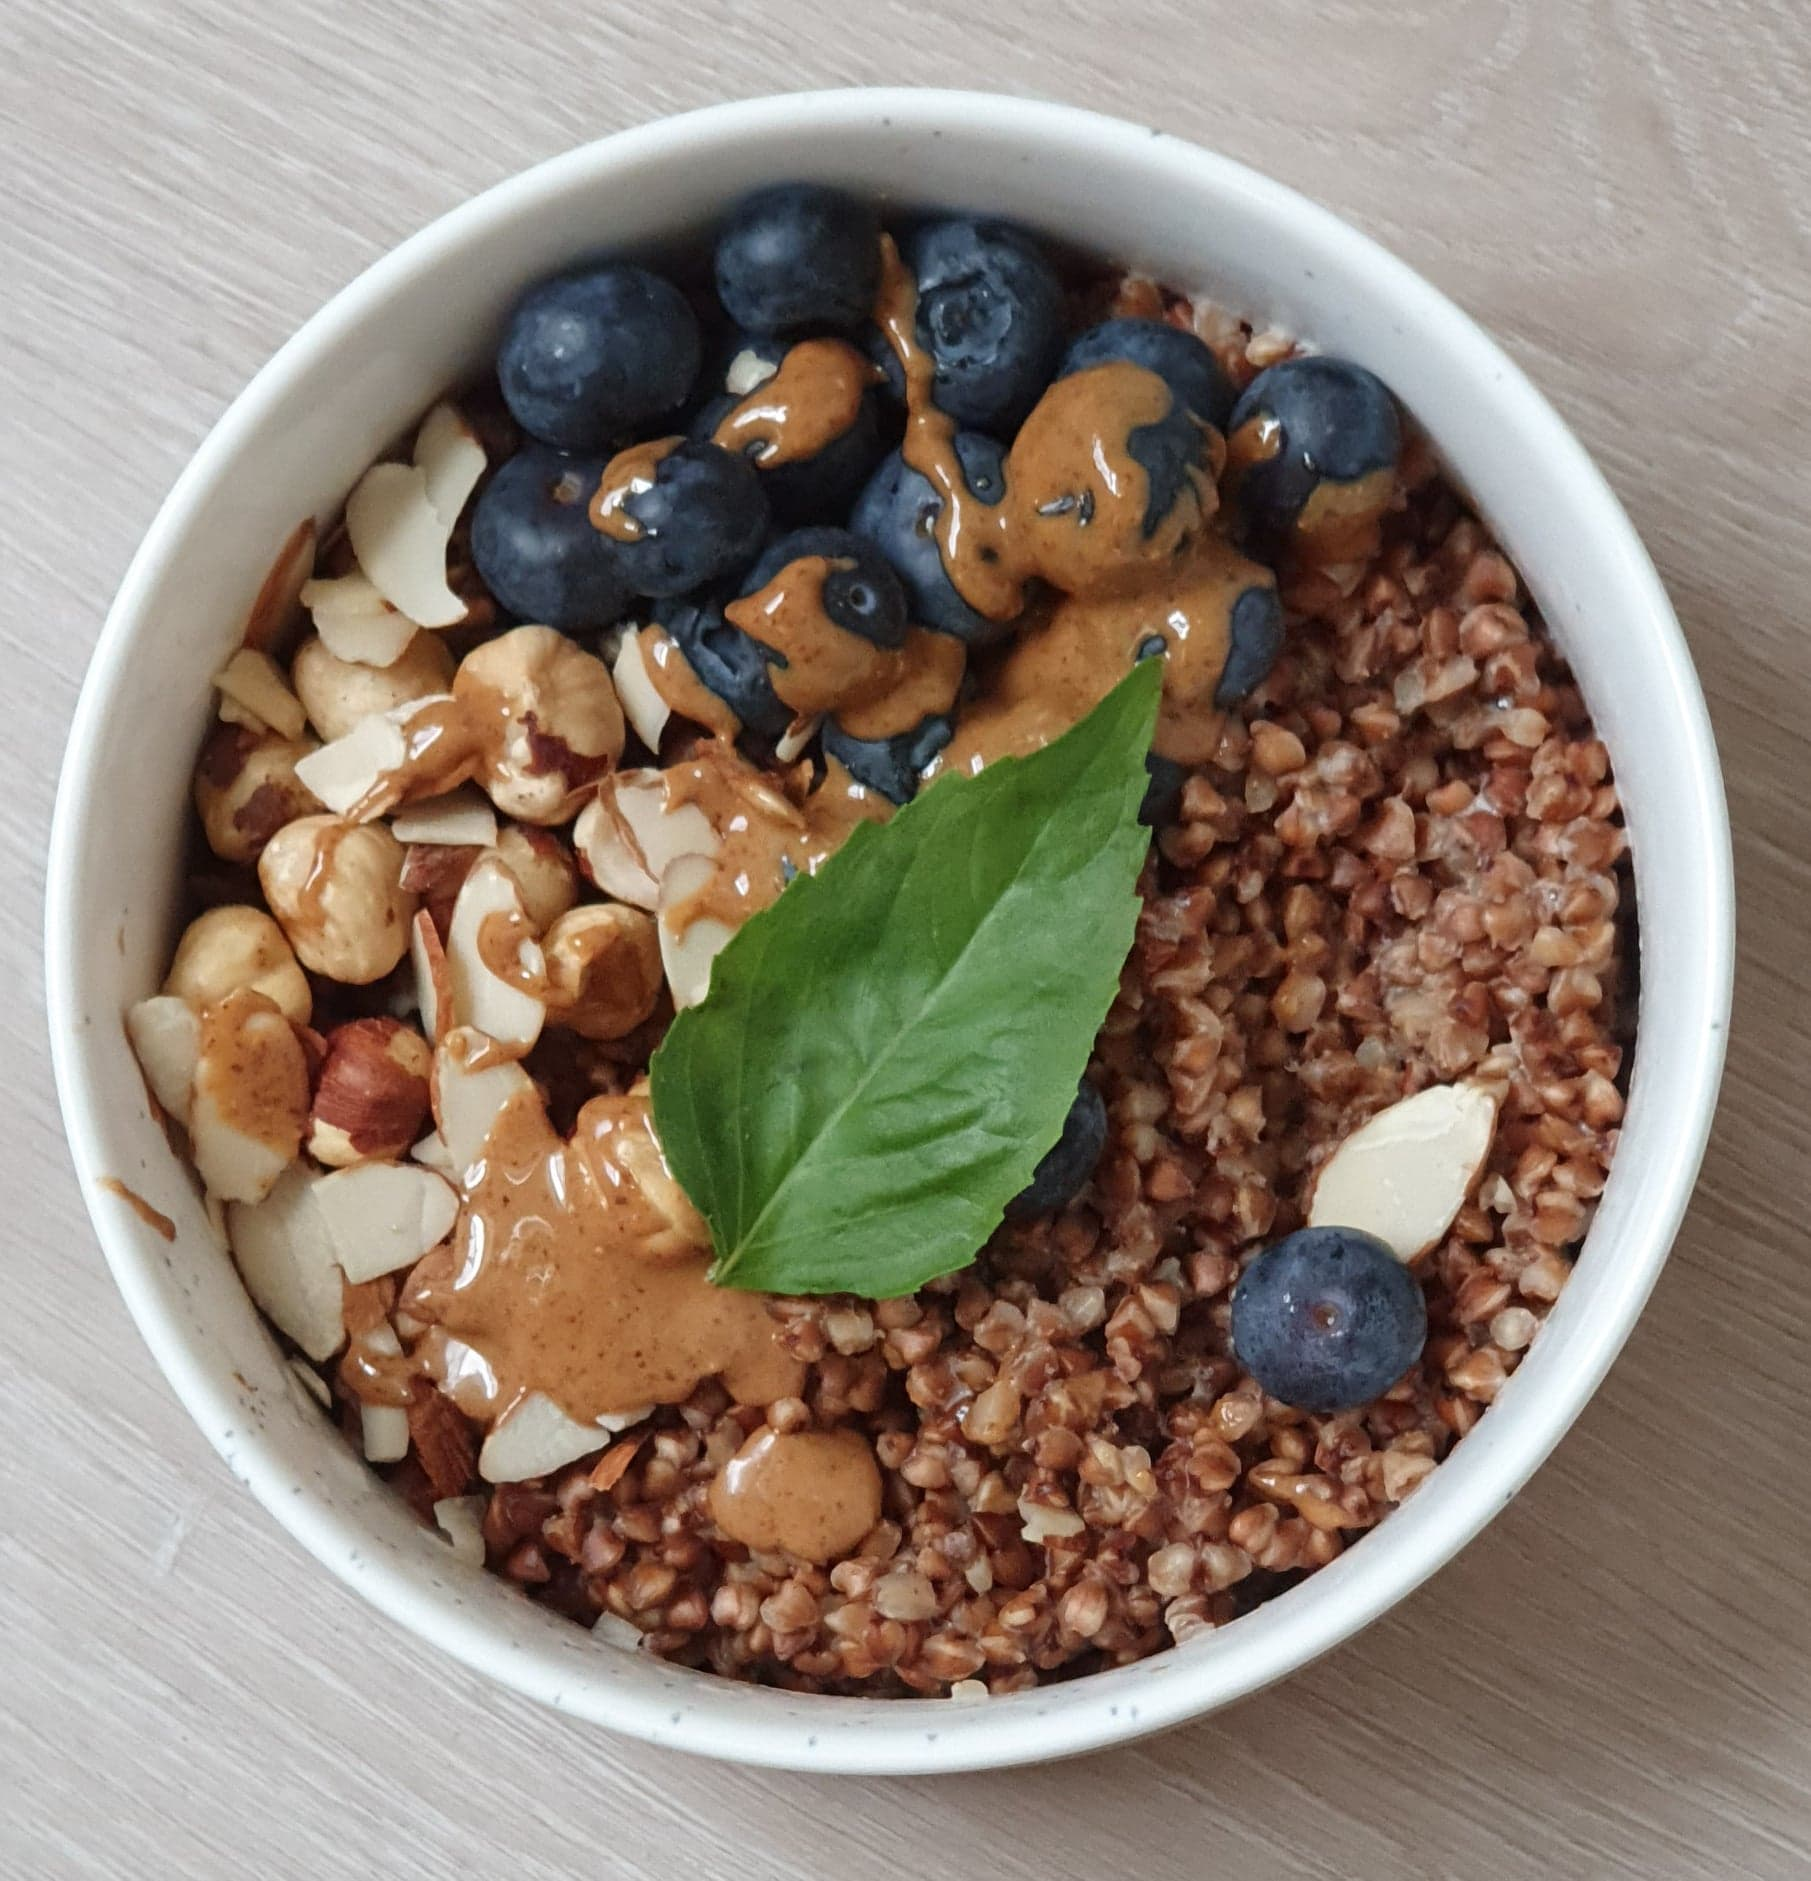 berry breakfast porridge with roasted buckwheat and nut butter